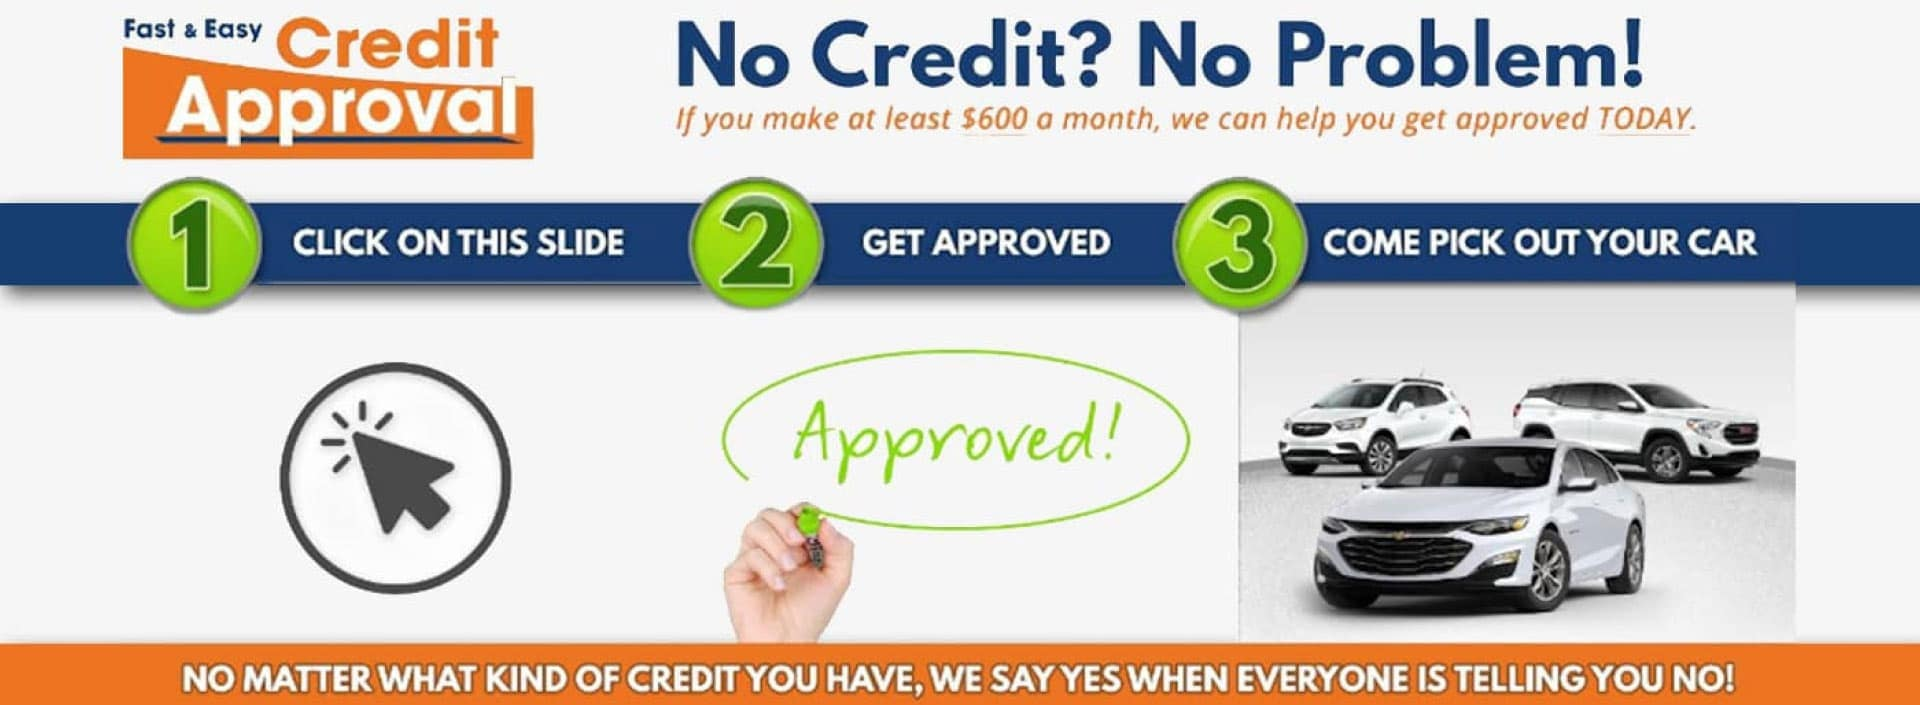 Fast & Easy Credit Approval Banner